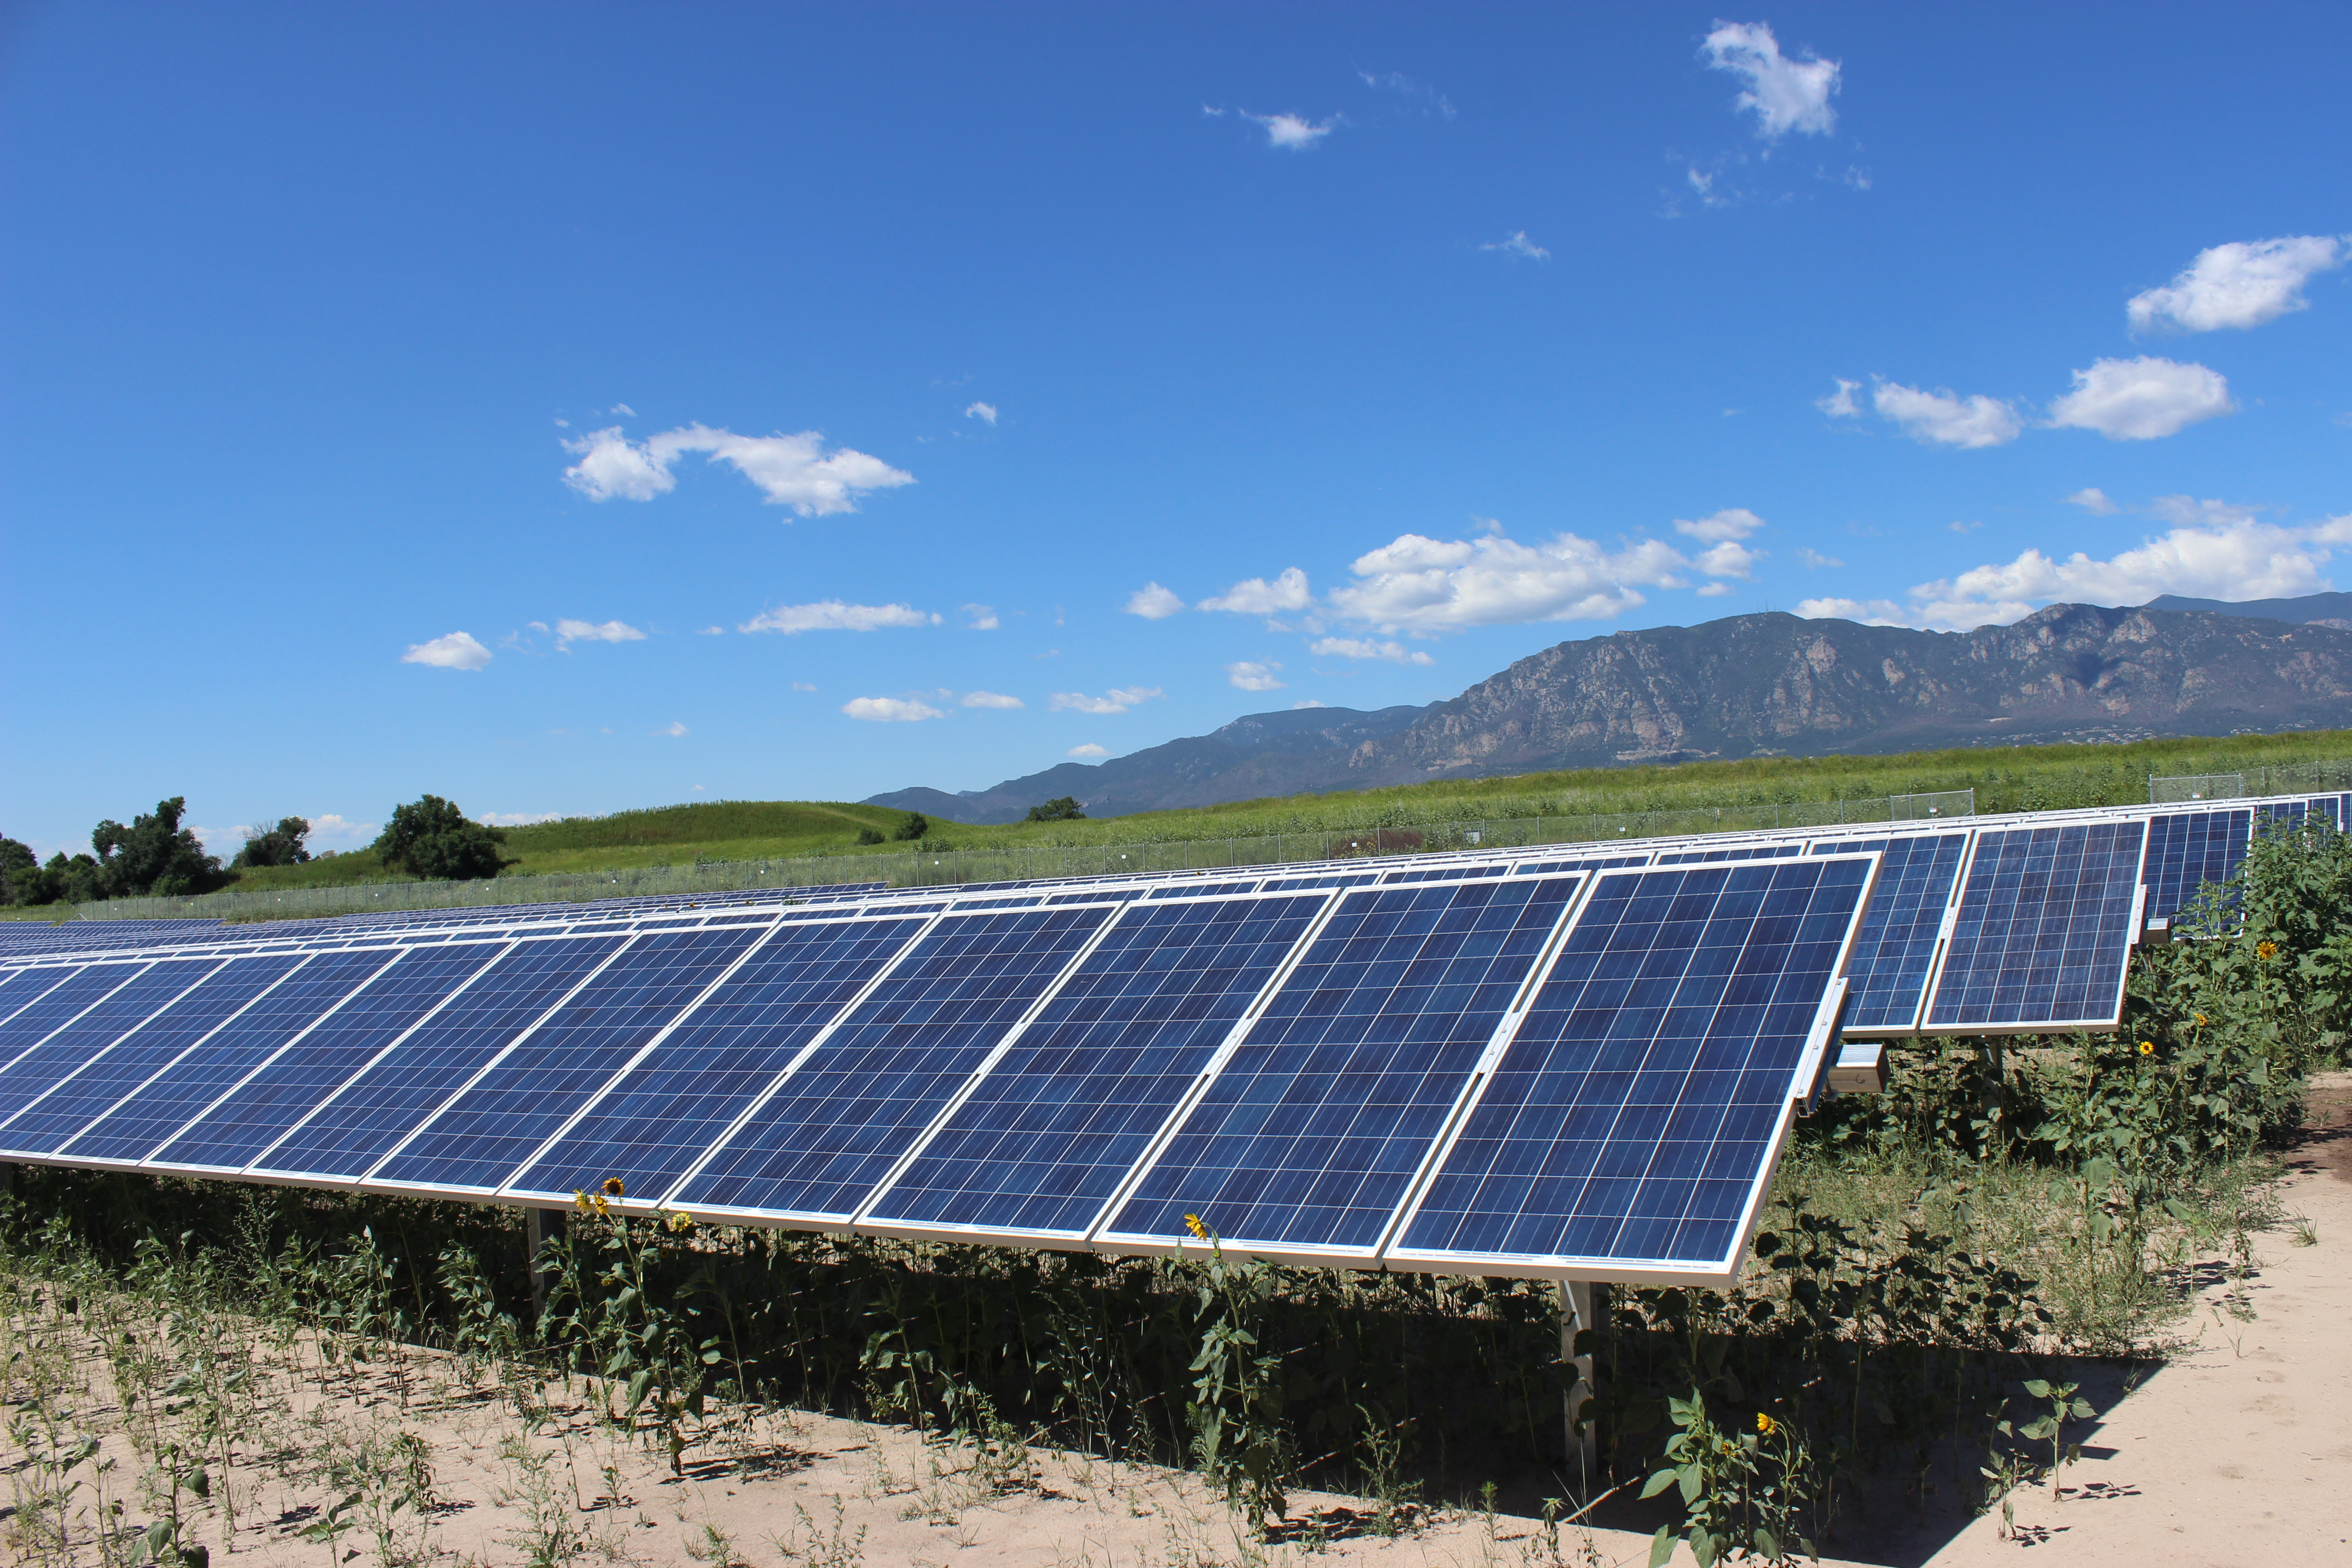 Solar panels in front of mountains